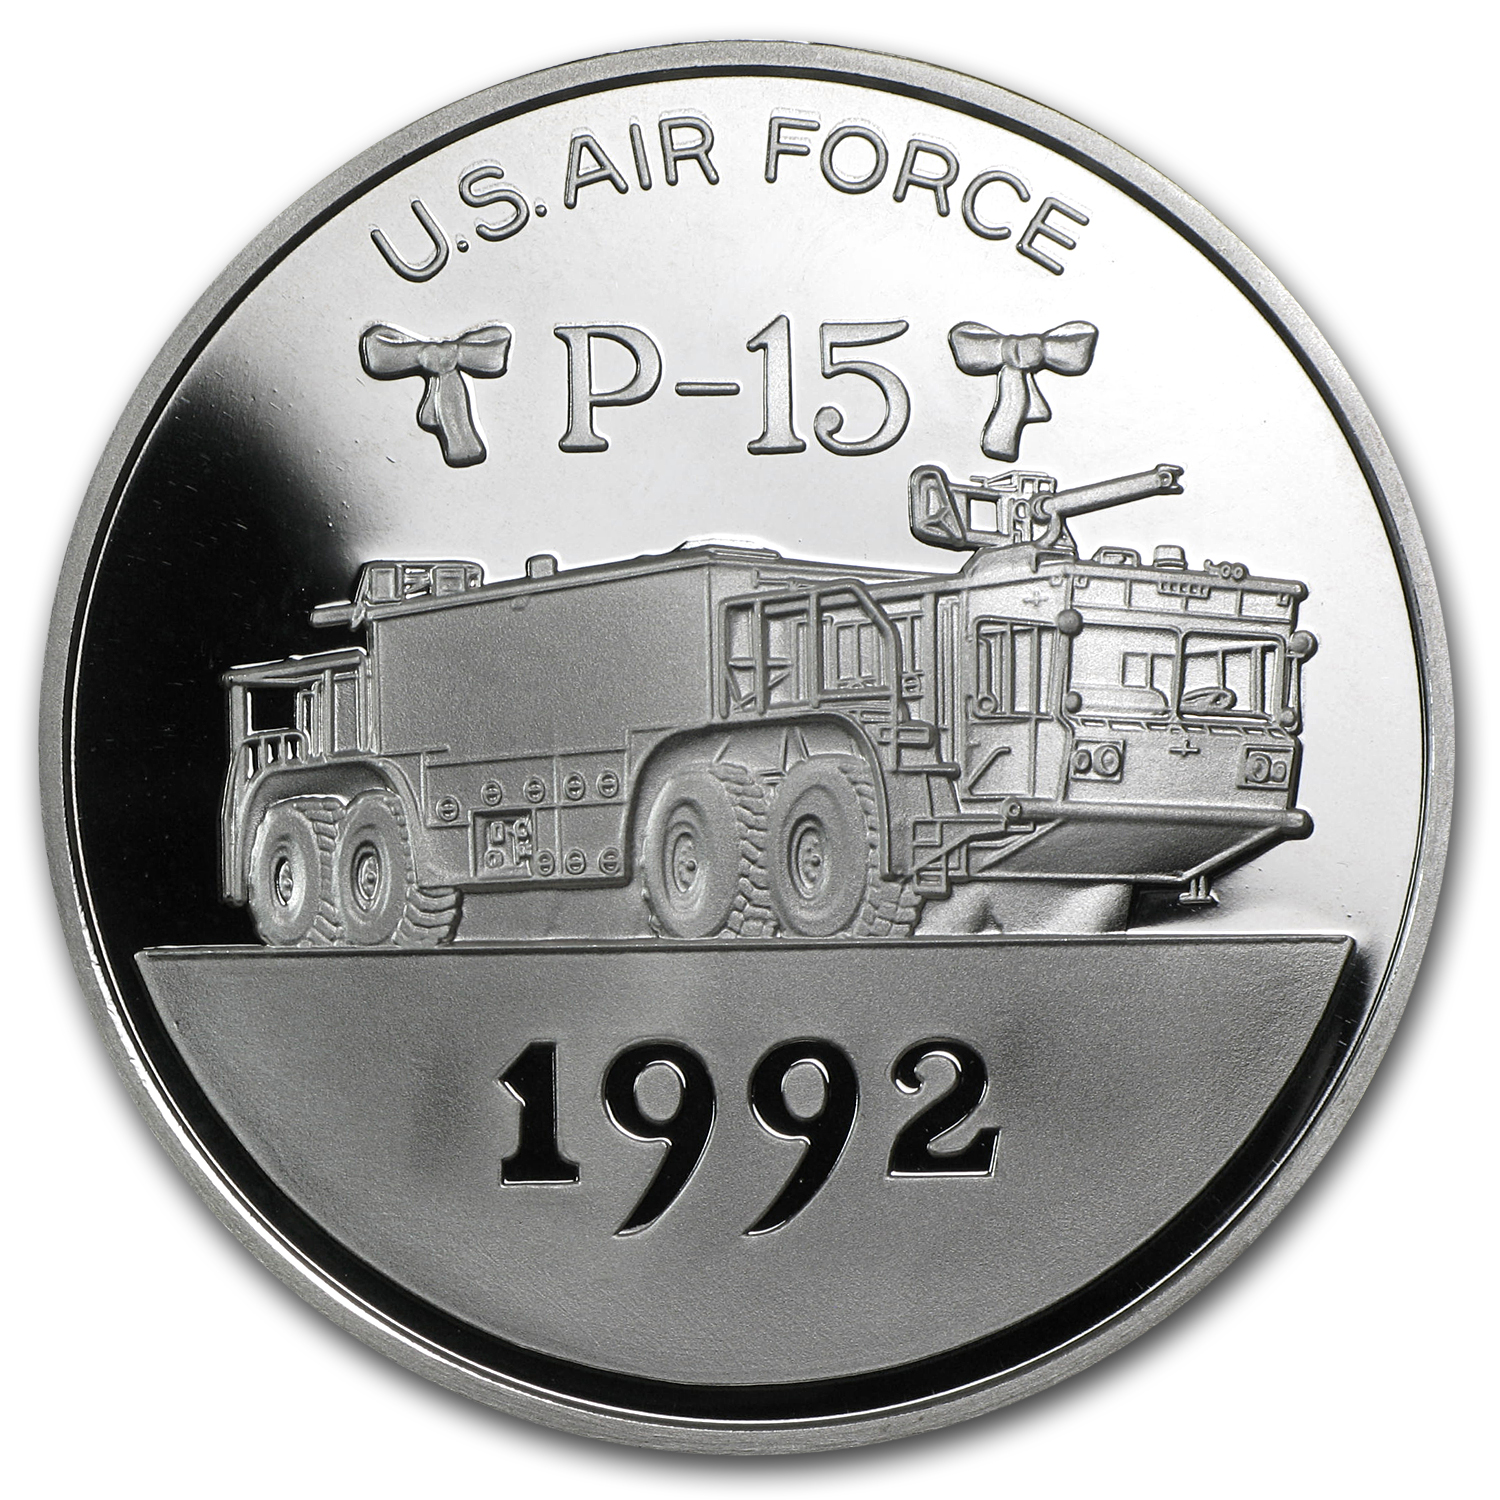 2 oz Silver Rounds - Joe's Fire-Truck Series